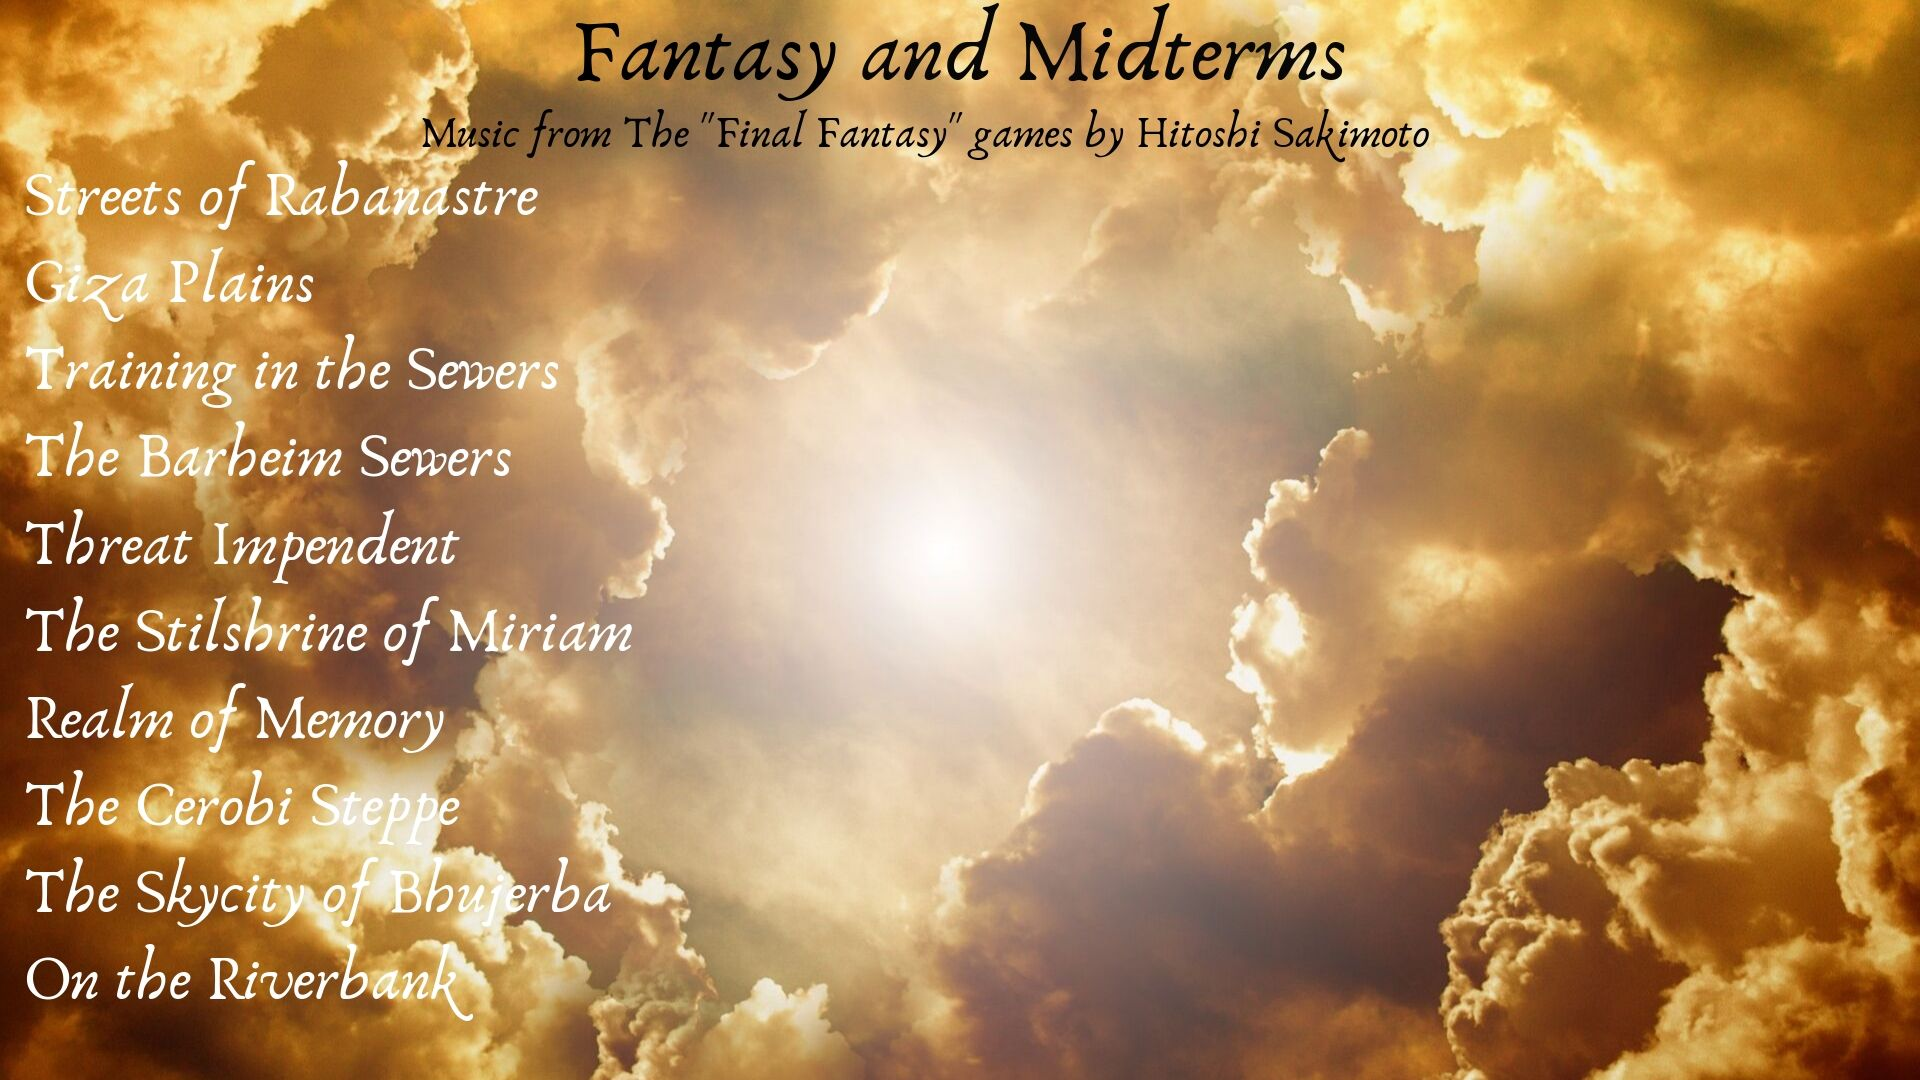 Fantasy and Midterms